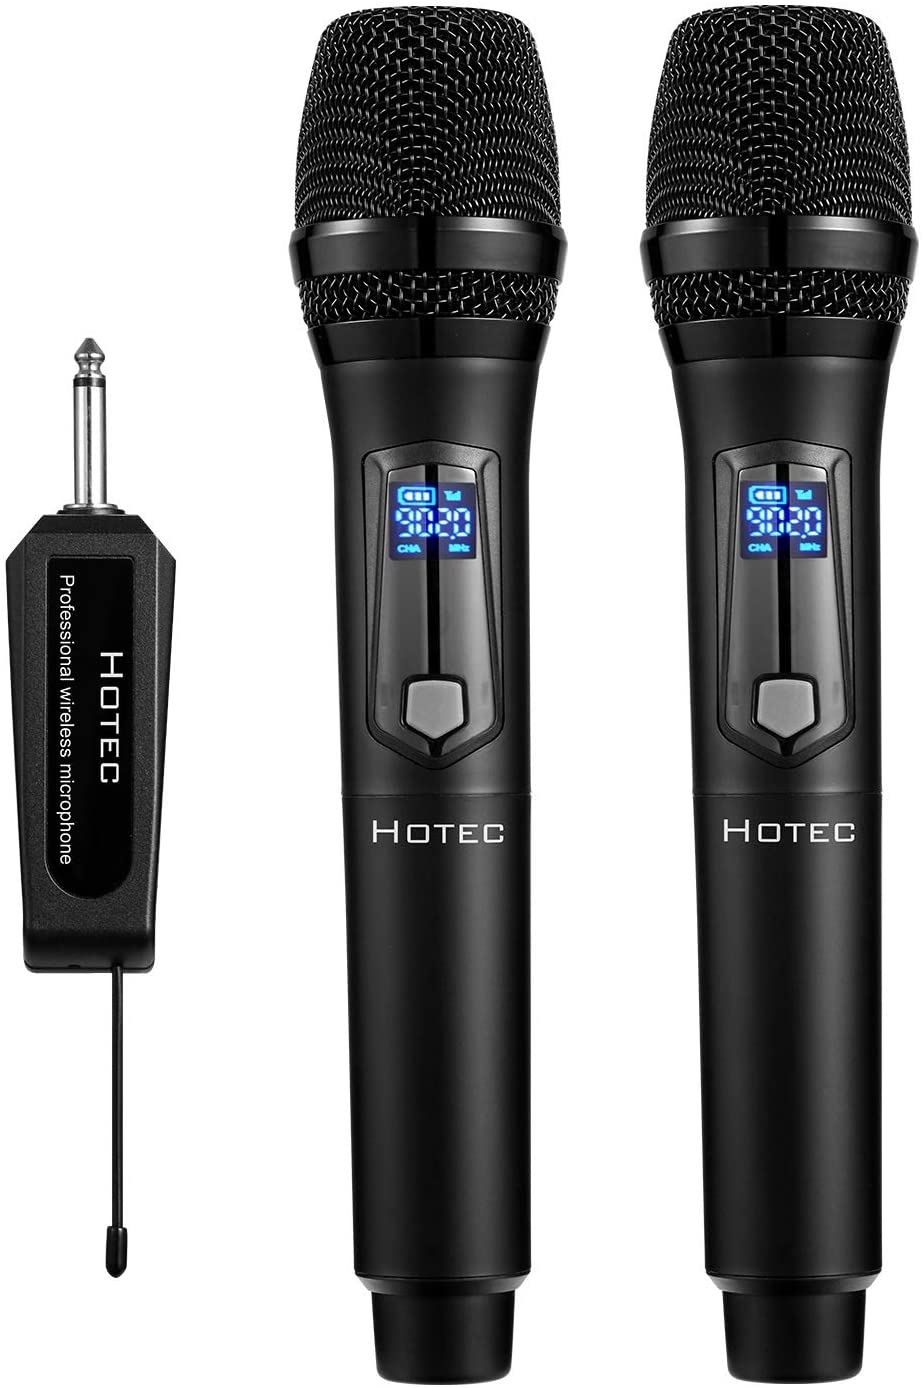 Hotec UHF Dual Wireless Karaoke Microphone with Portable Receiver for Singing Karaoke Teaching Speech Church (H-U26G